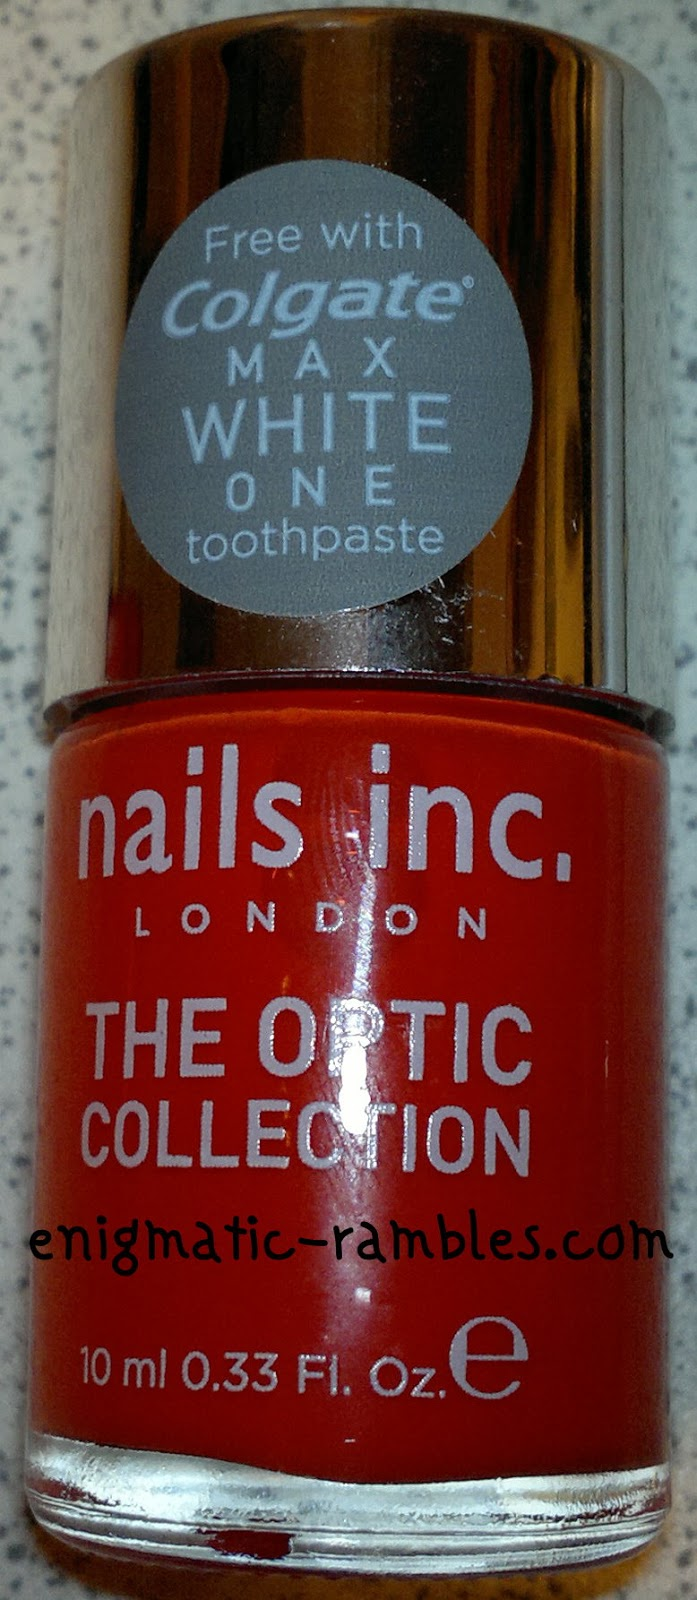 Colgate-Max-White-One-Optic-Toothpaste-Nails-Inc-Optic-Flame-swatch